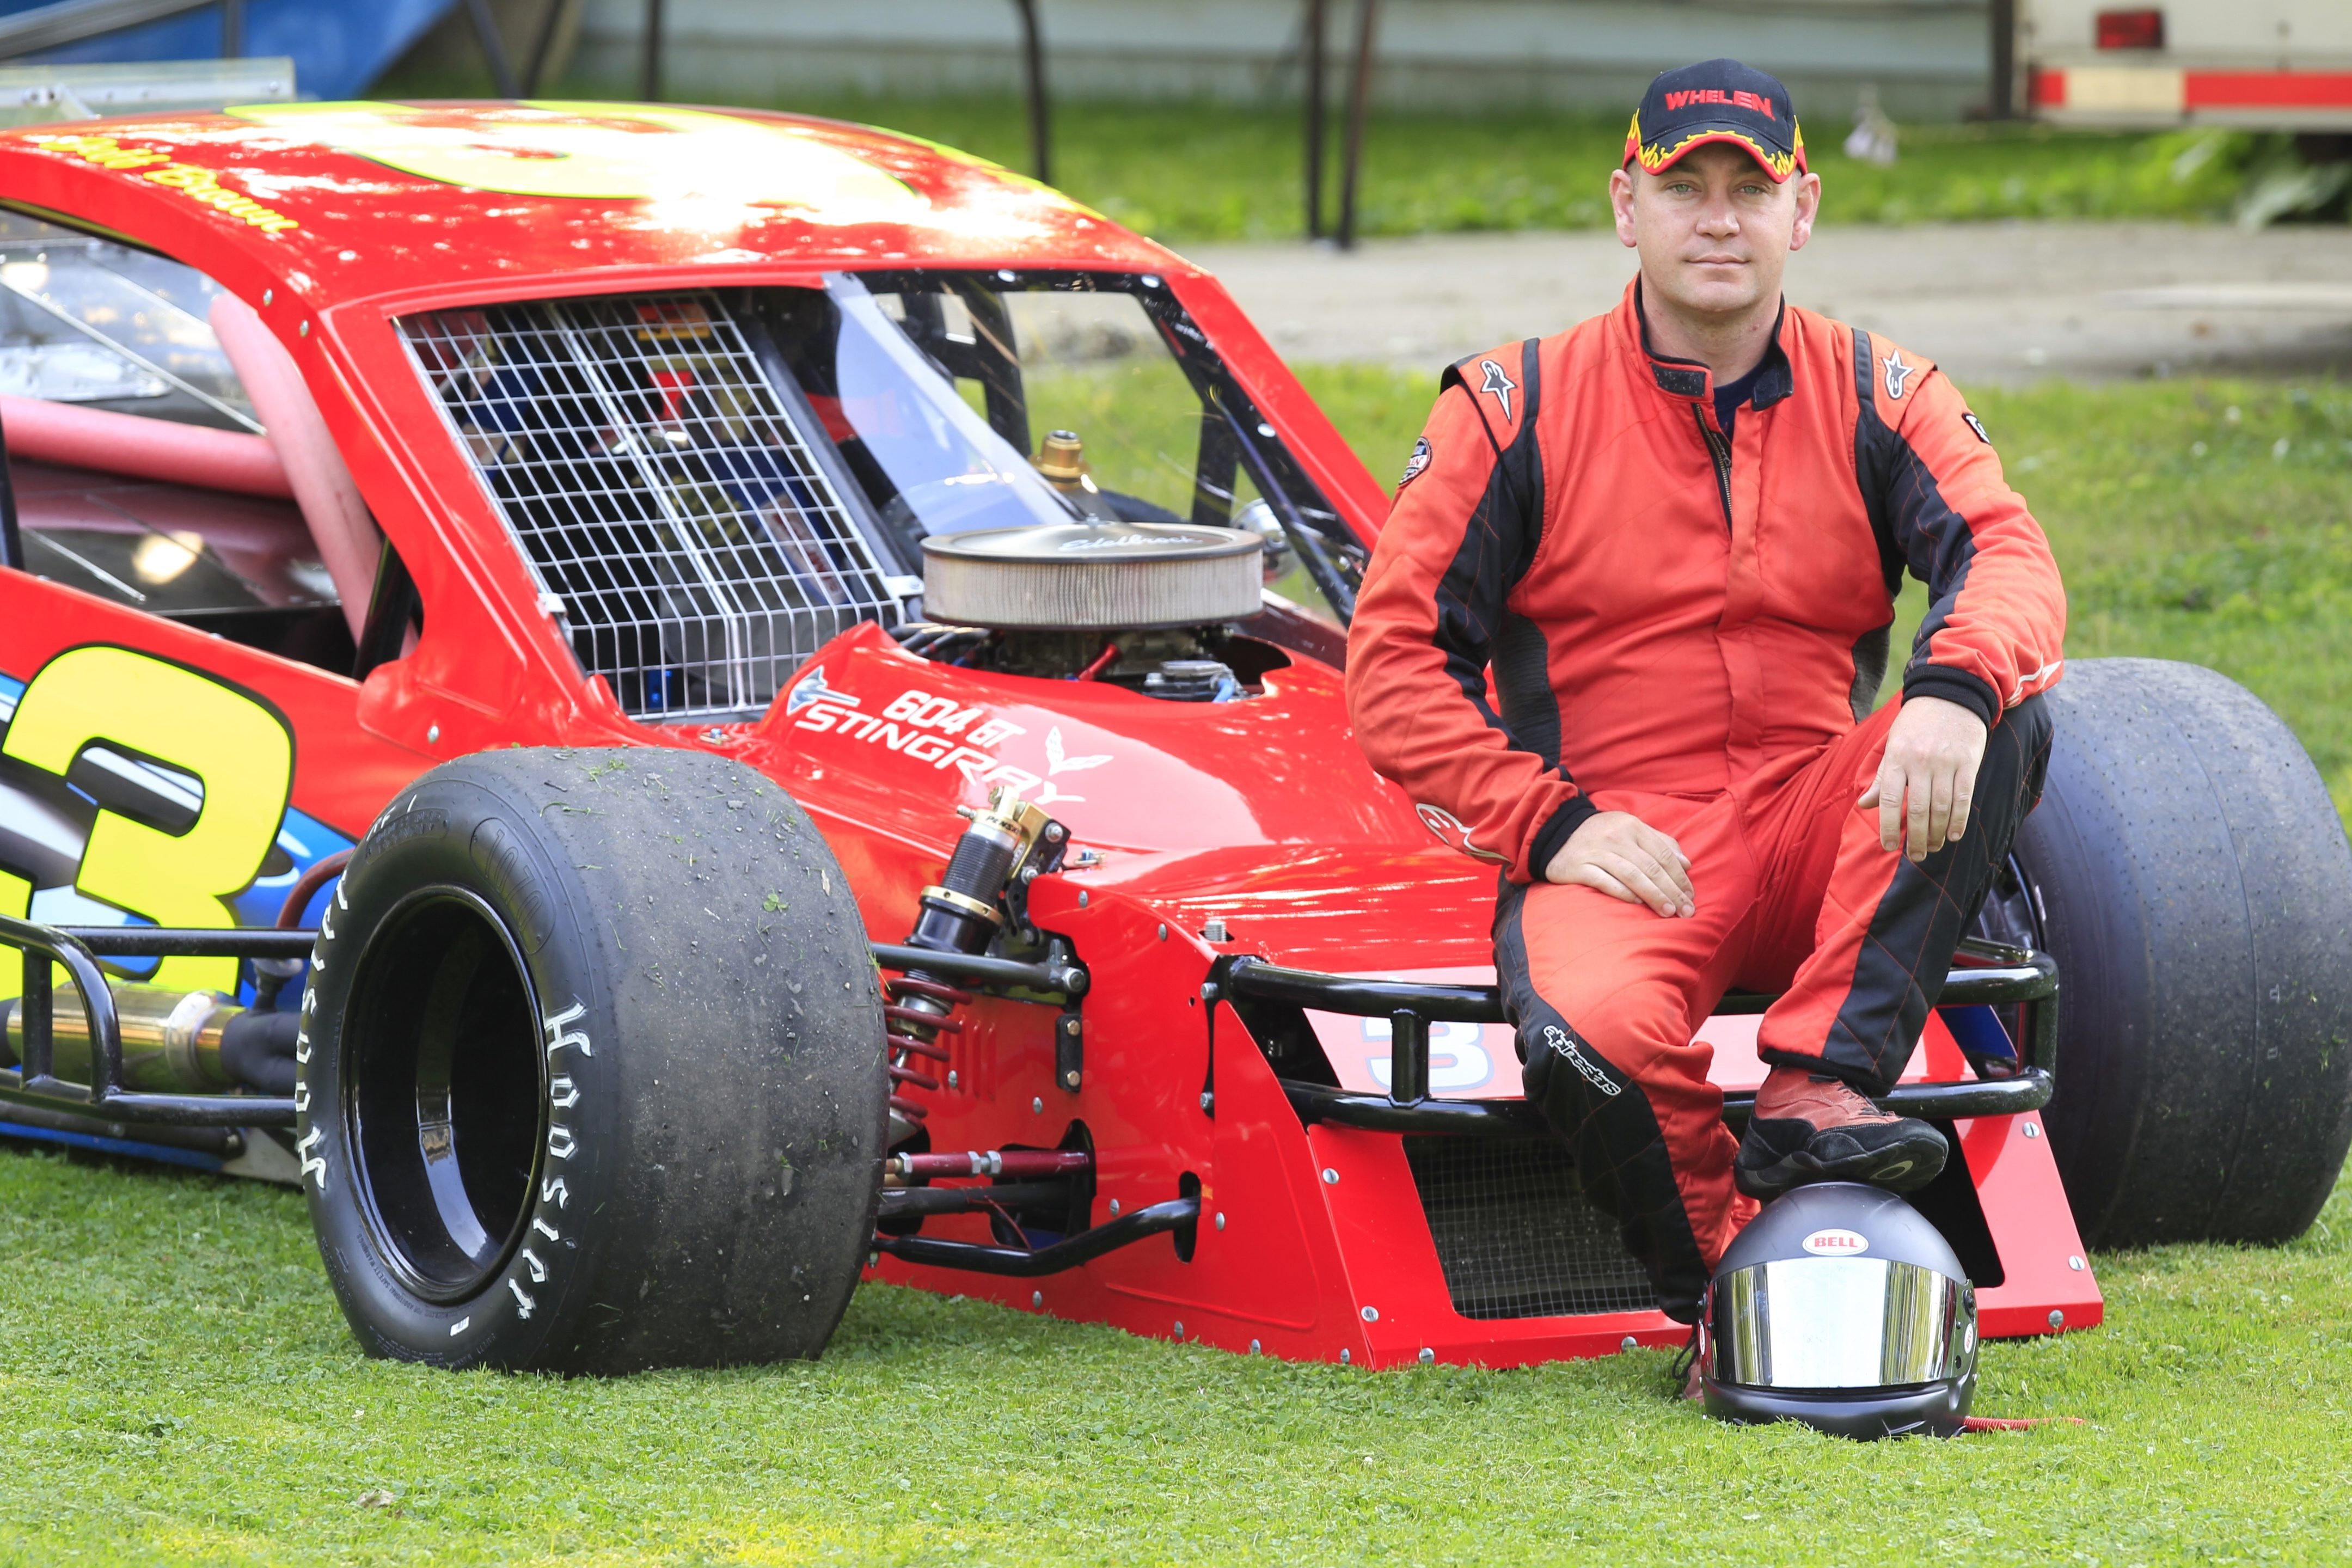 Jeff Brown  overcame an accident to win July 5 at Holland and then won again the following week.